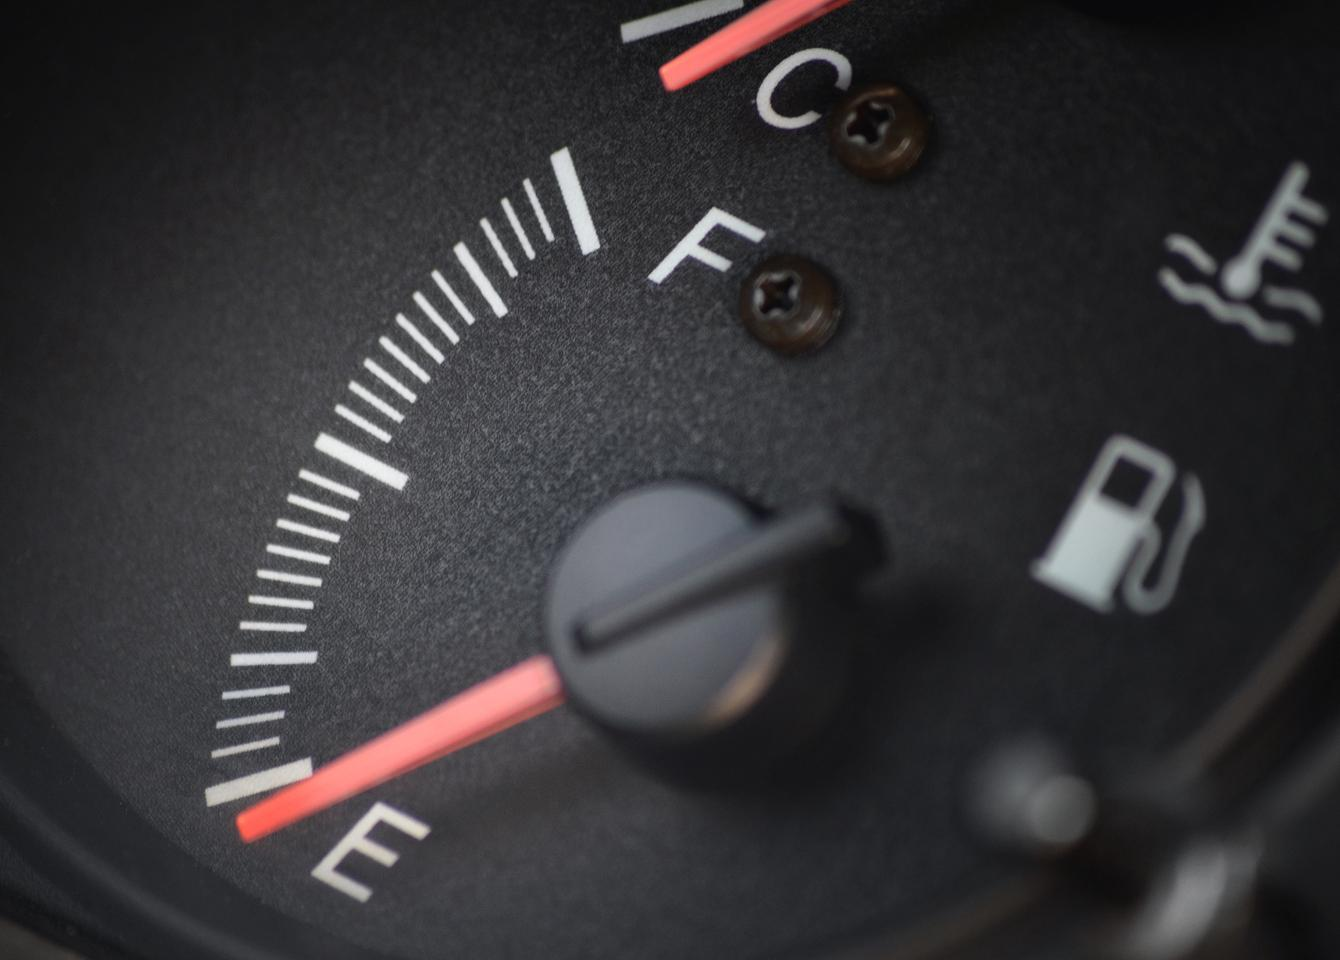 """Magic Tank squeezes every last drop of gas out of your car's """"empty"""" fuel tank (Photo: Shutterstock)"""